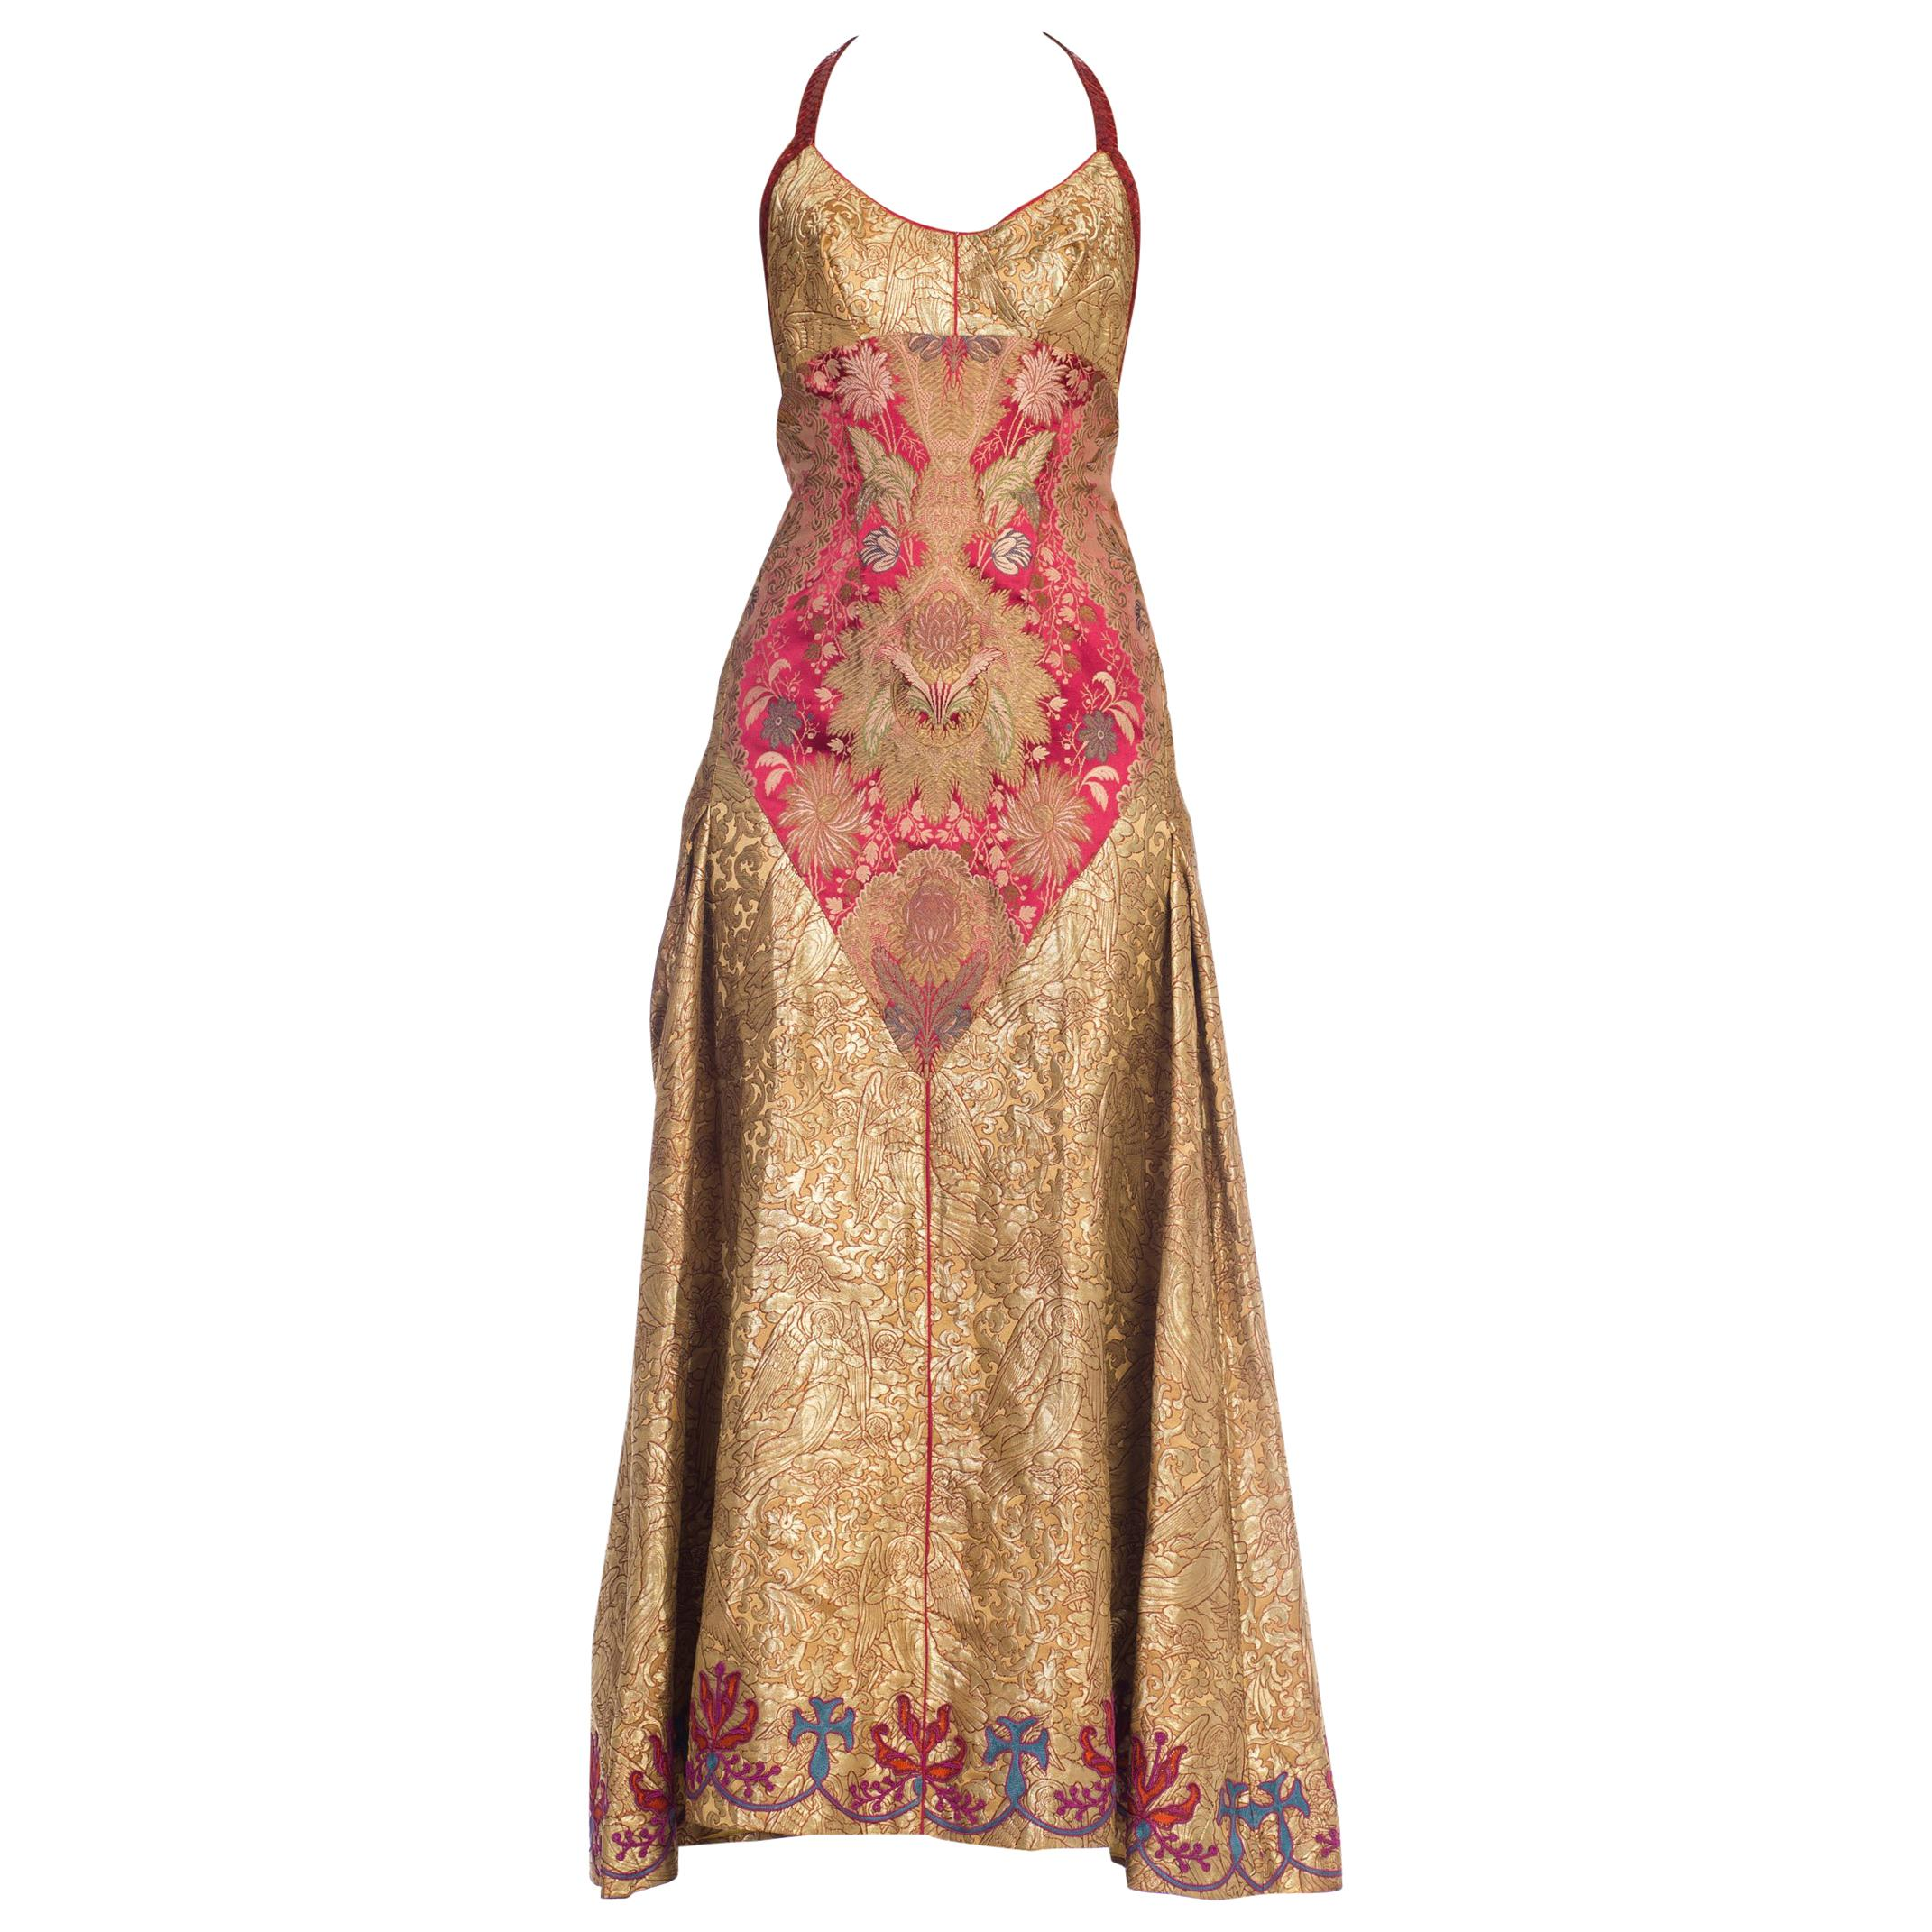 MORPHEW COLLECTION Crystal & Snakeskin Trimmed Gown Made From Antique Victorian